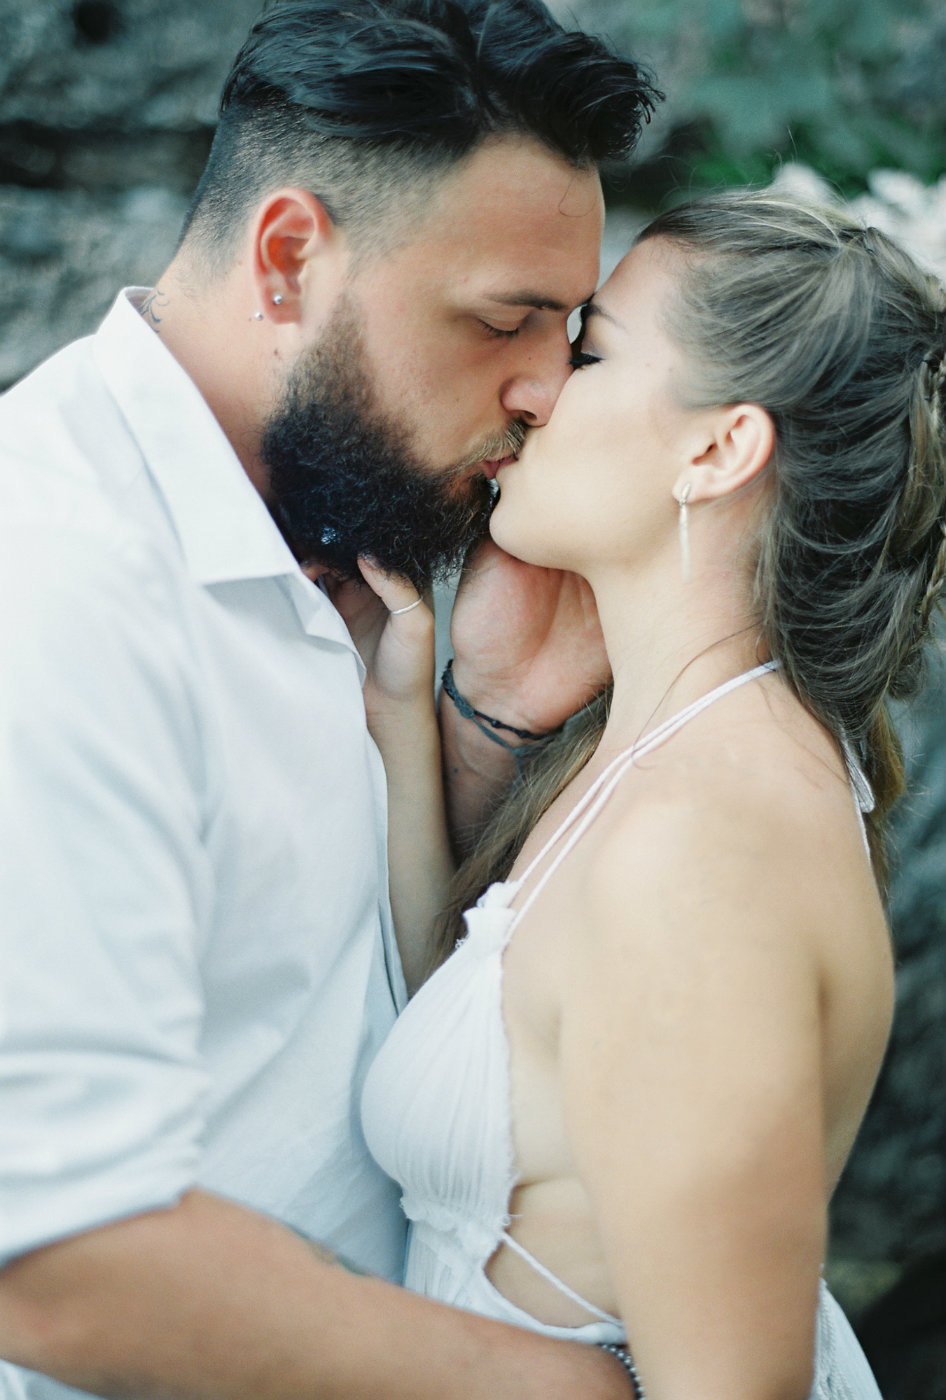 positano_italy_elopement_melanie_gabrielle_photography_118